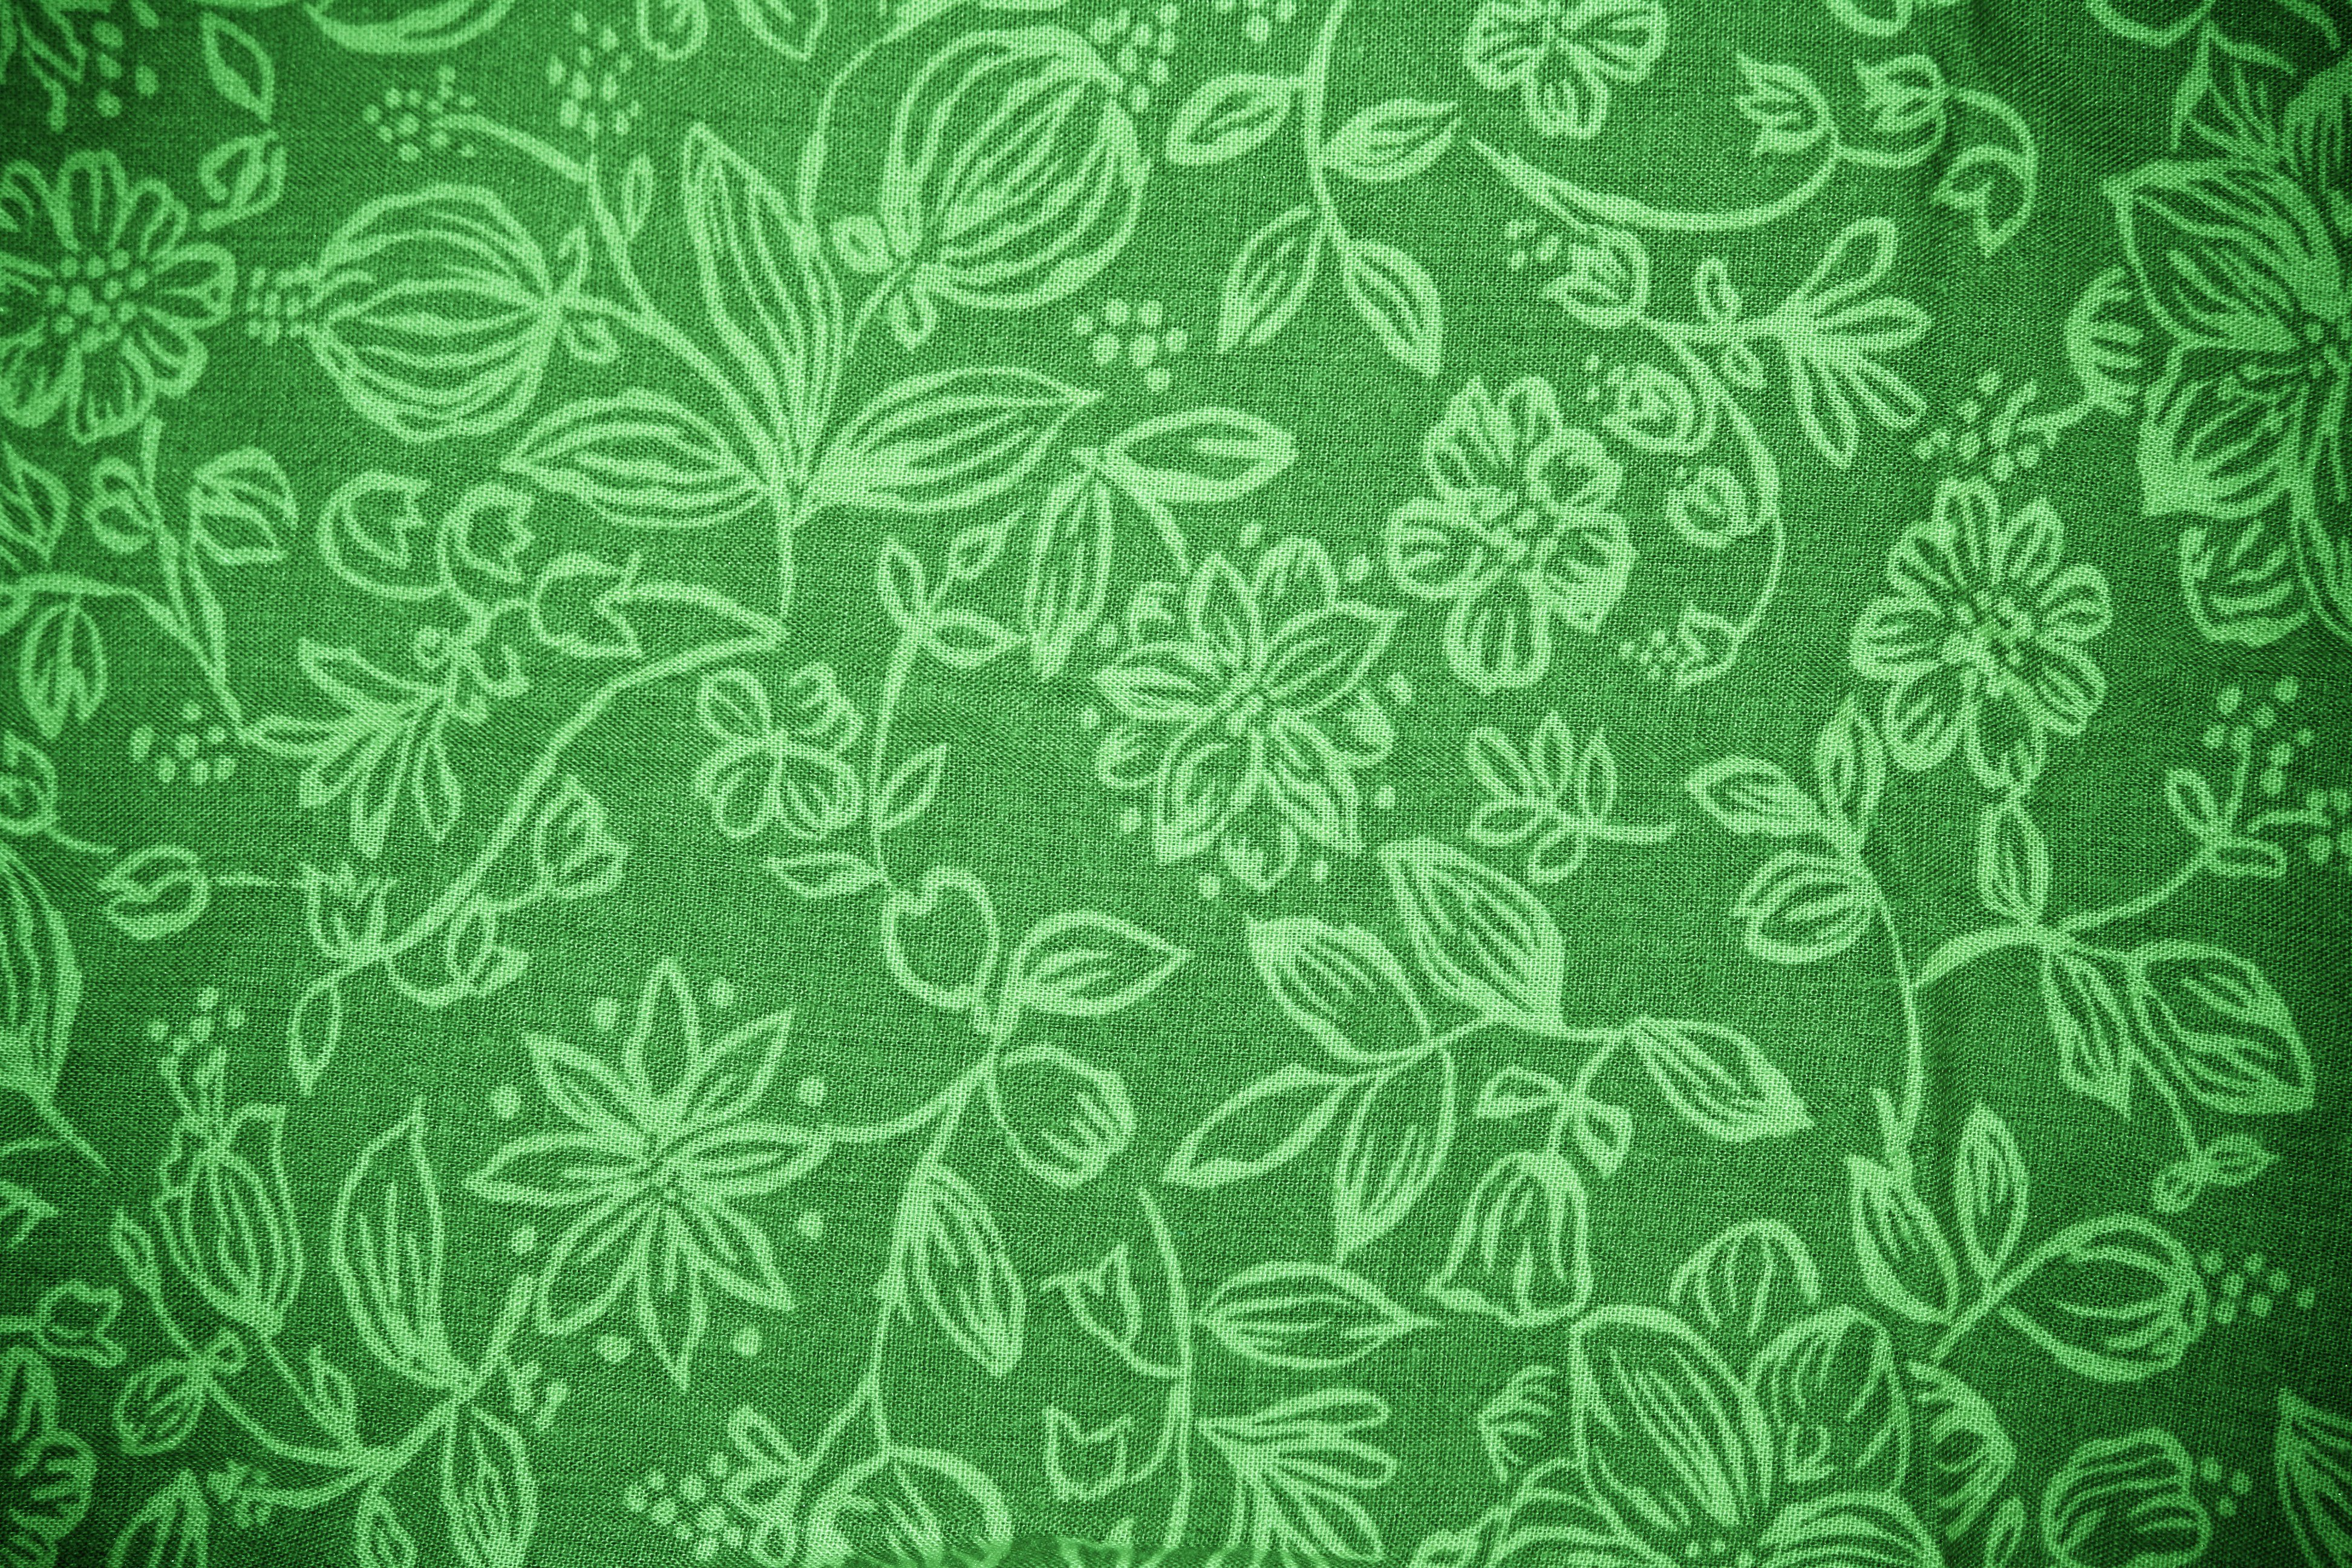 Green Fabric with Floral Pattern Texture Picture | Free ...